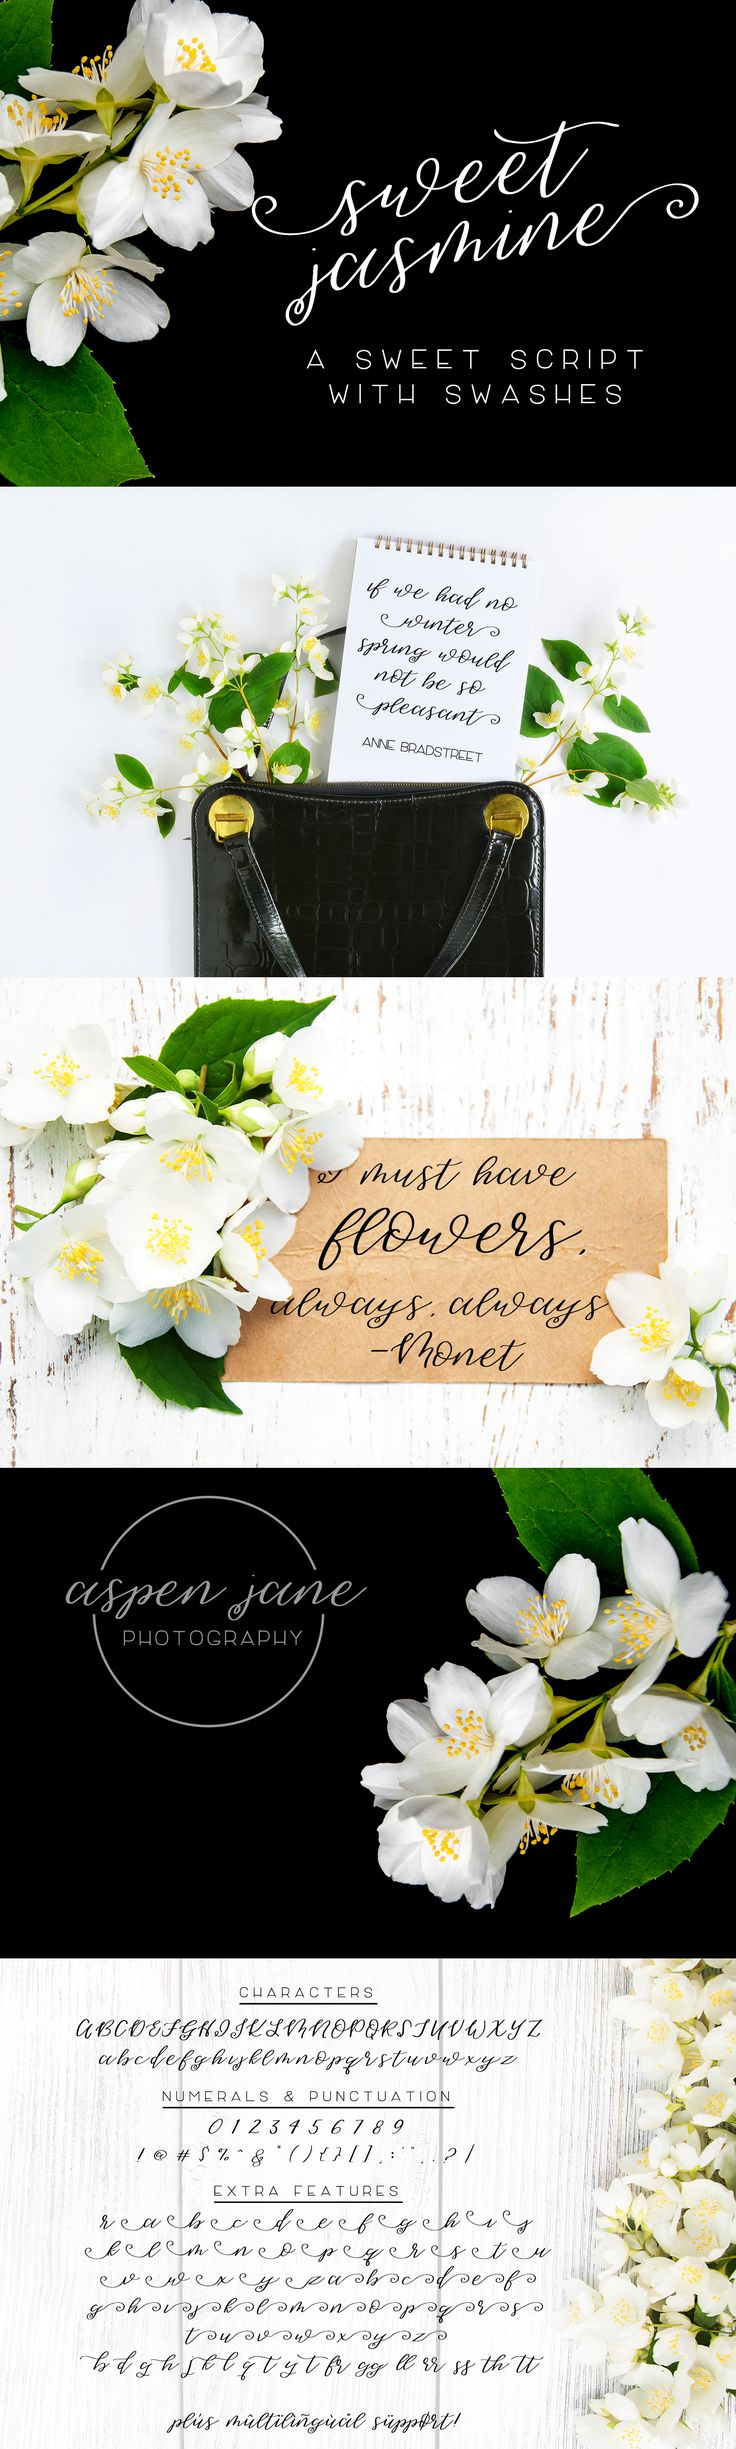 cursive fonts for wedding cards%0A Sweet Jasmine  a beautiful  handlettered script font  perfect for your next